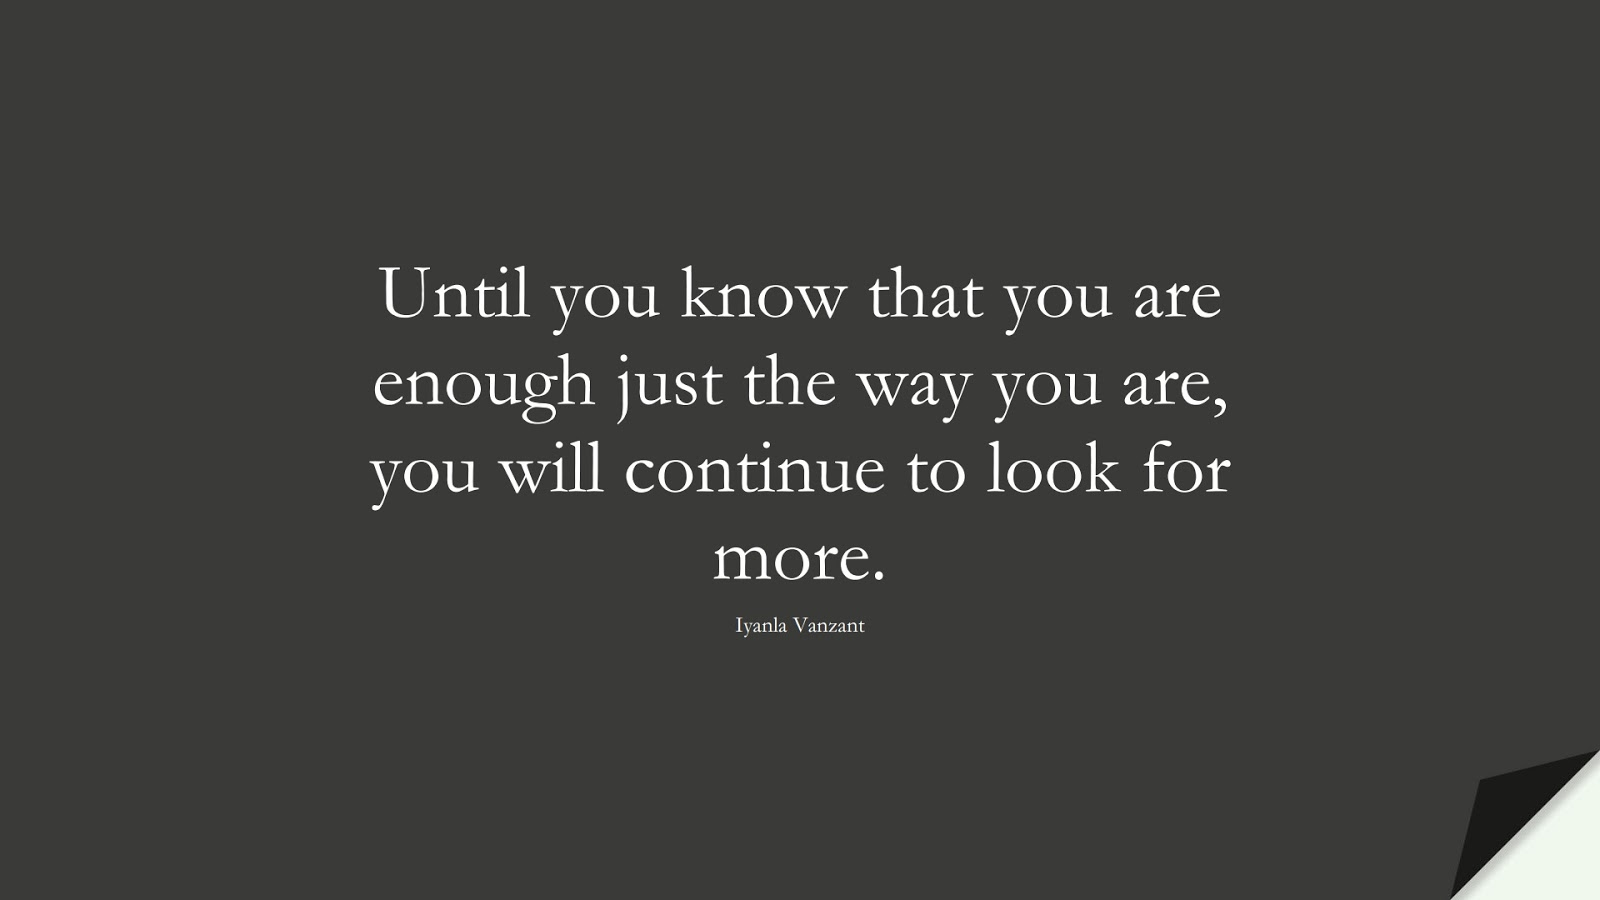 Until you know that you are enough just the way you are, you will continue to look for more. (Iyanla Vanzant);  #SelfEsteemQuotes